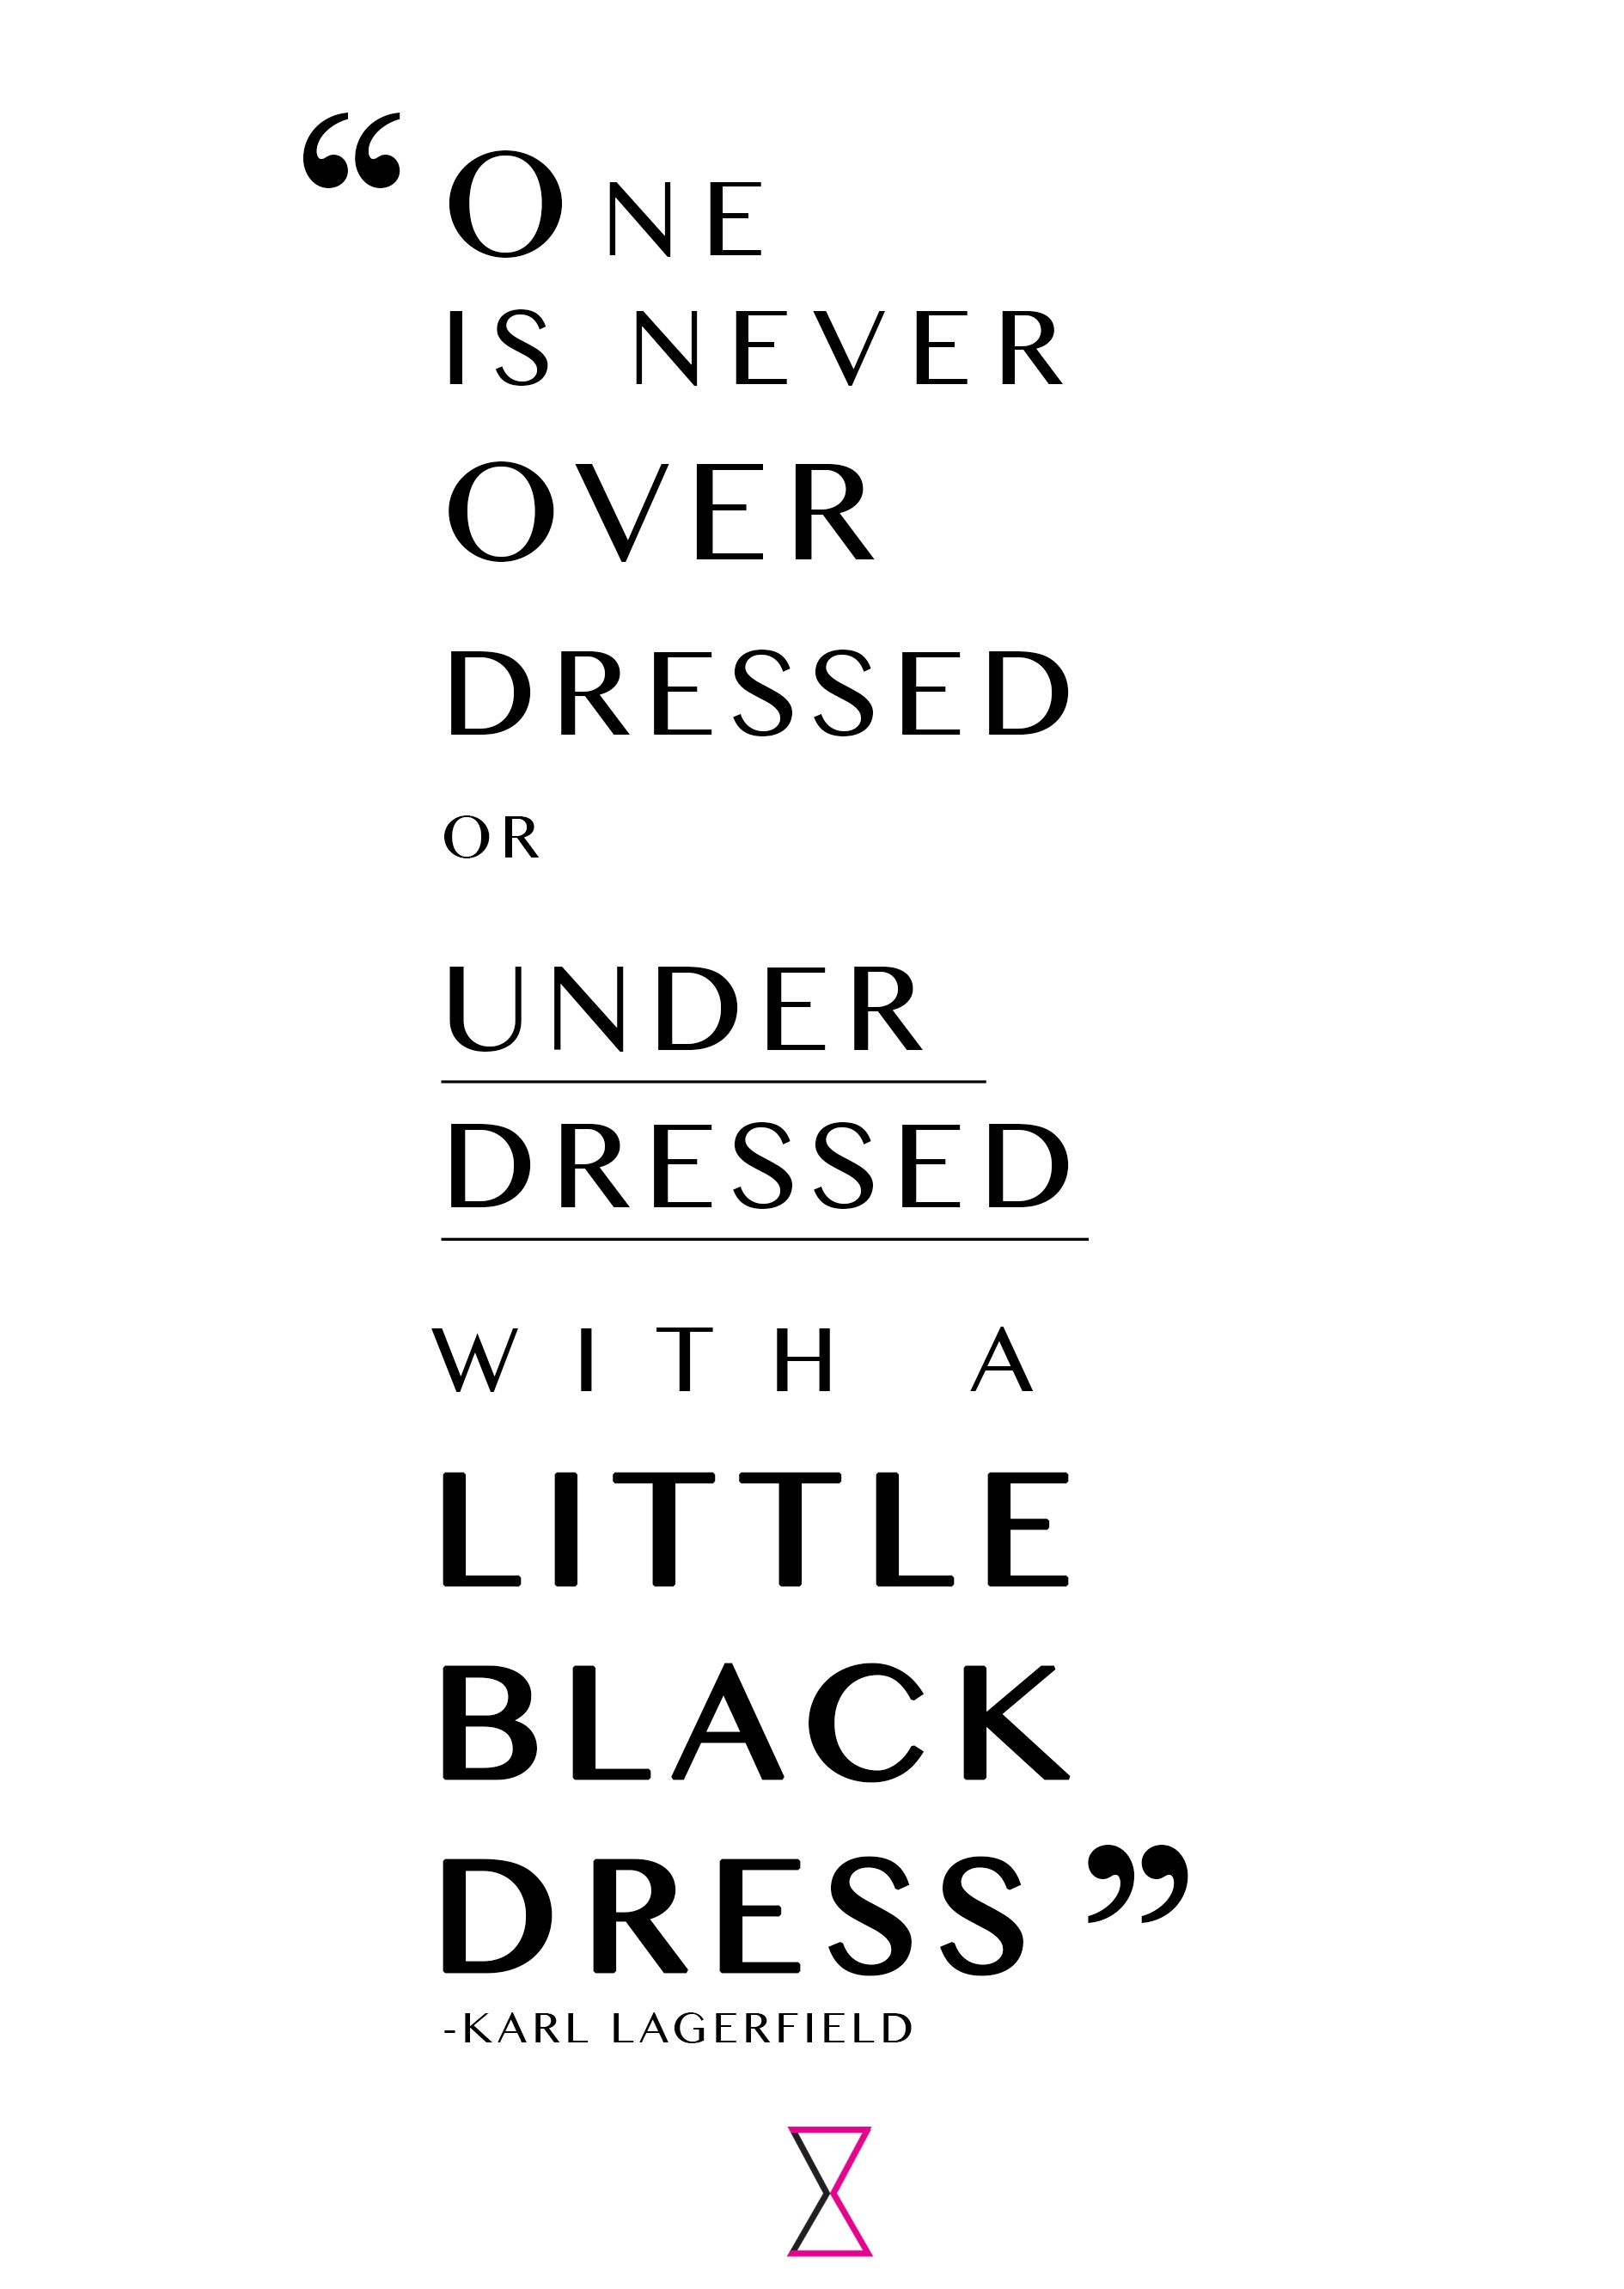 One Is Never Over Dressed Or Under Dressed In A Little Black Dress Karl Lagerfeld Fashion Quotes Inspirational Karl Lagerfeld Fashion Quotes Fashion Quotes [ 2664 x 1890 Pixel ]